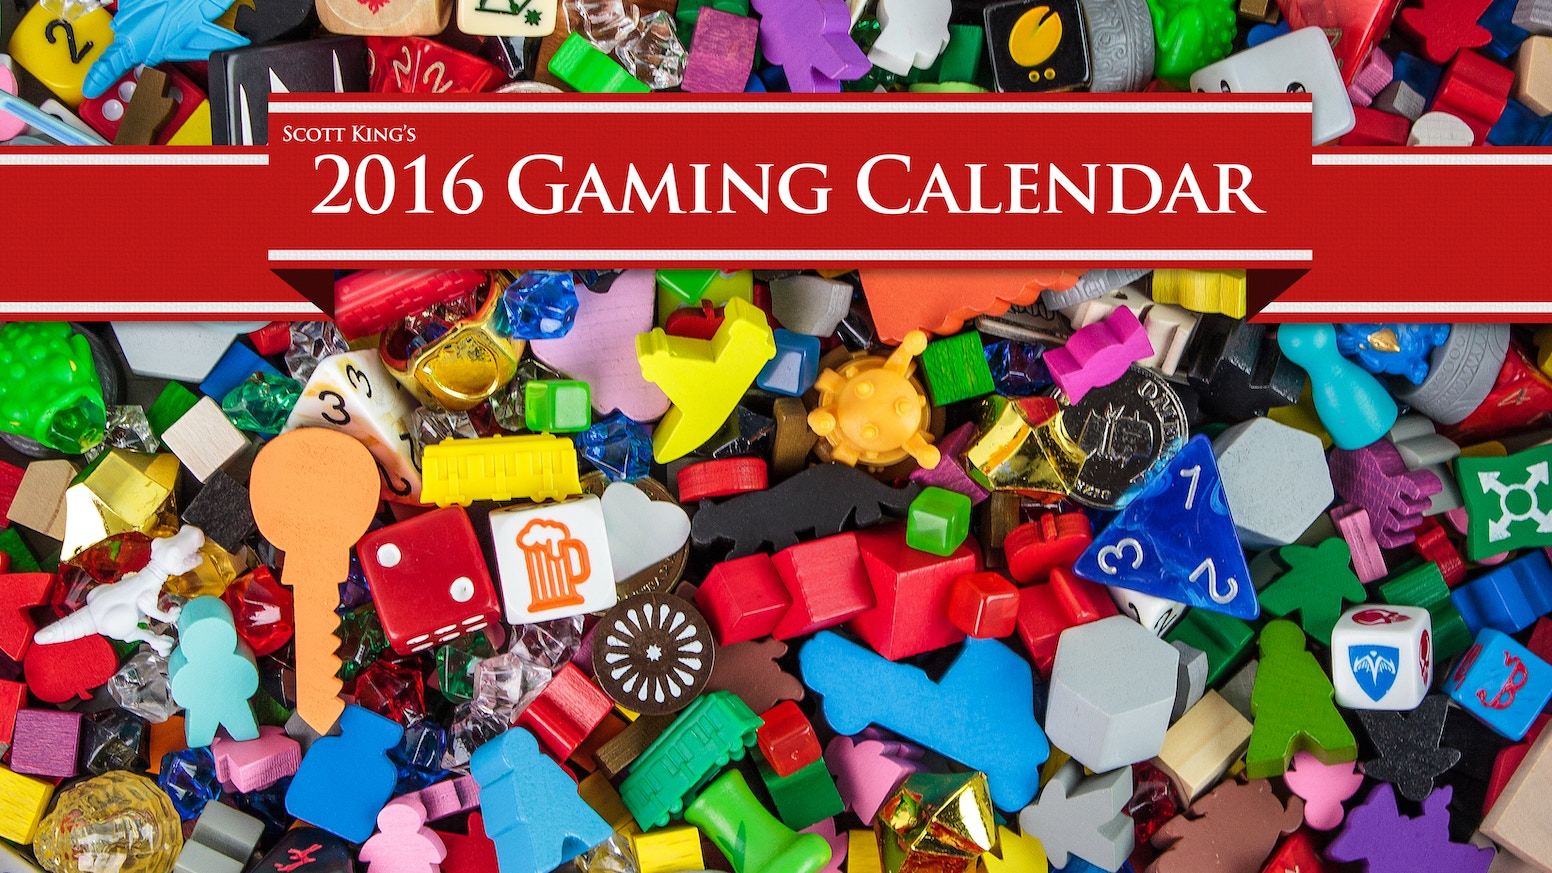 A 2016 Calendar featuring some of the coolest and prettiest board games of all time.